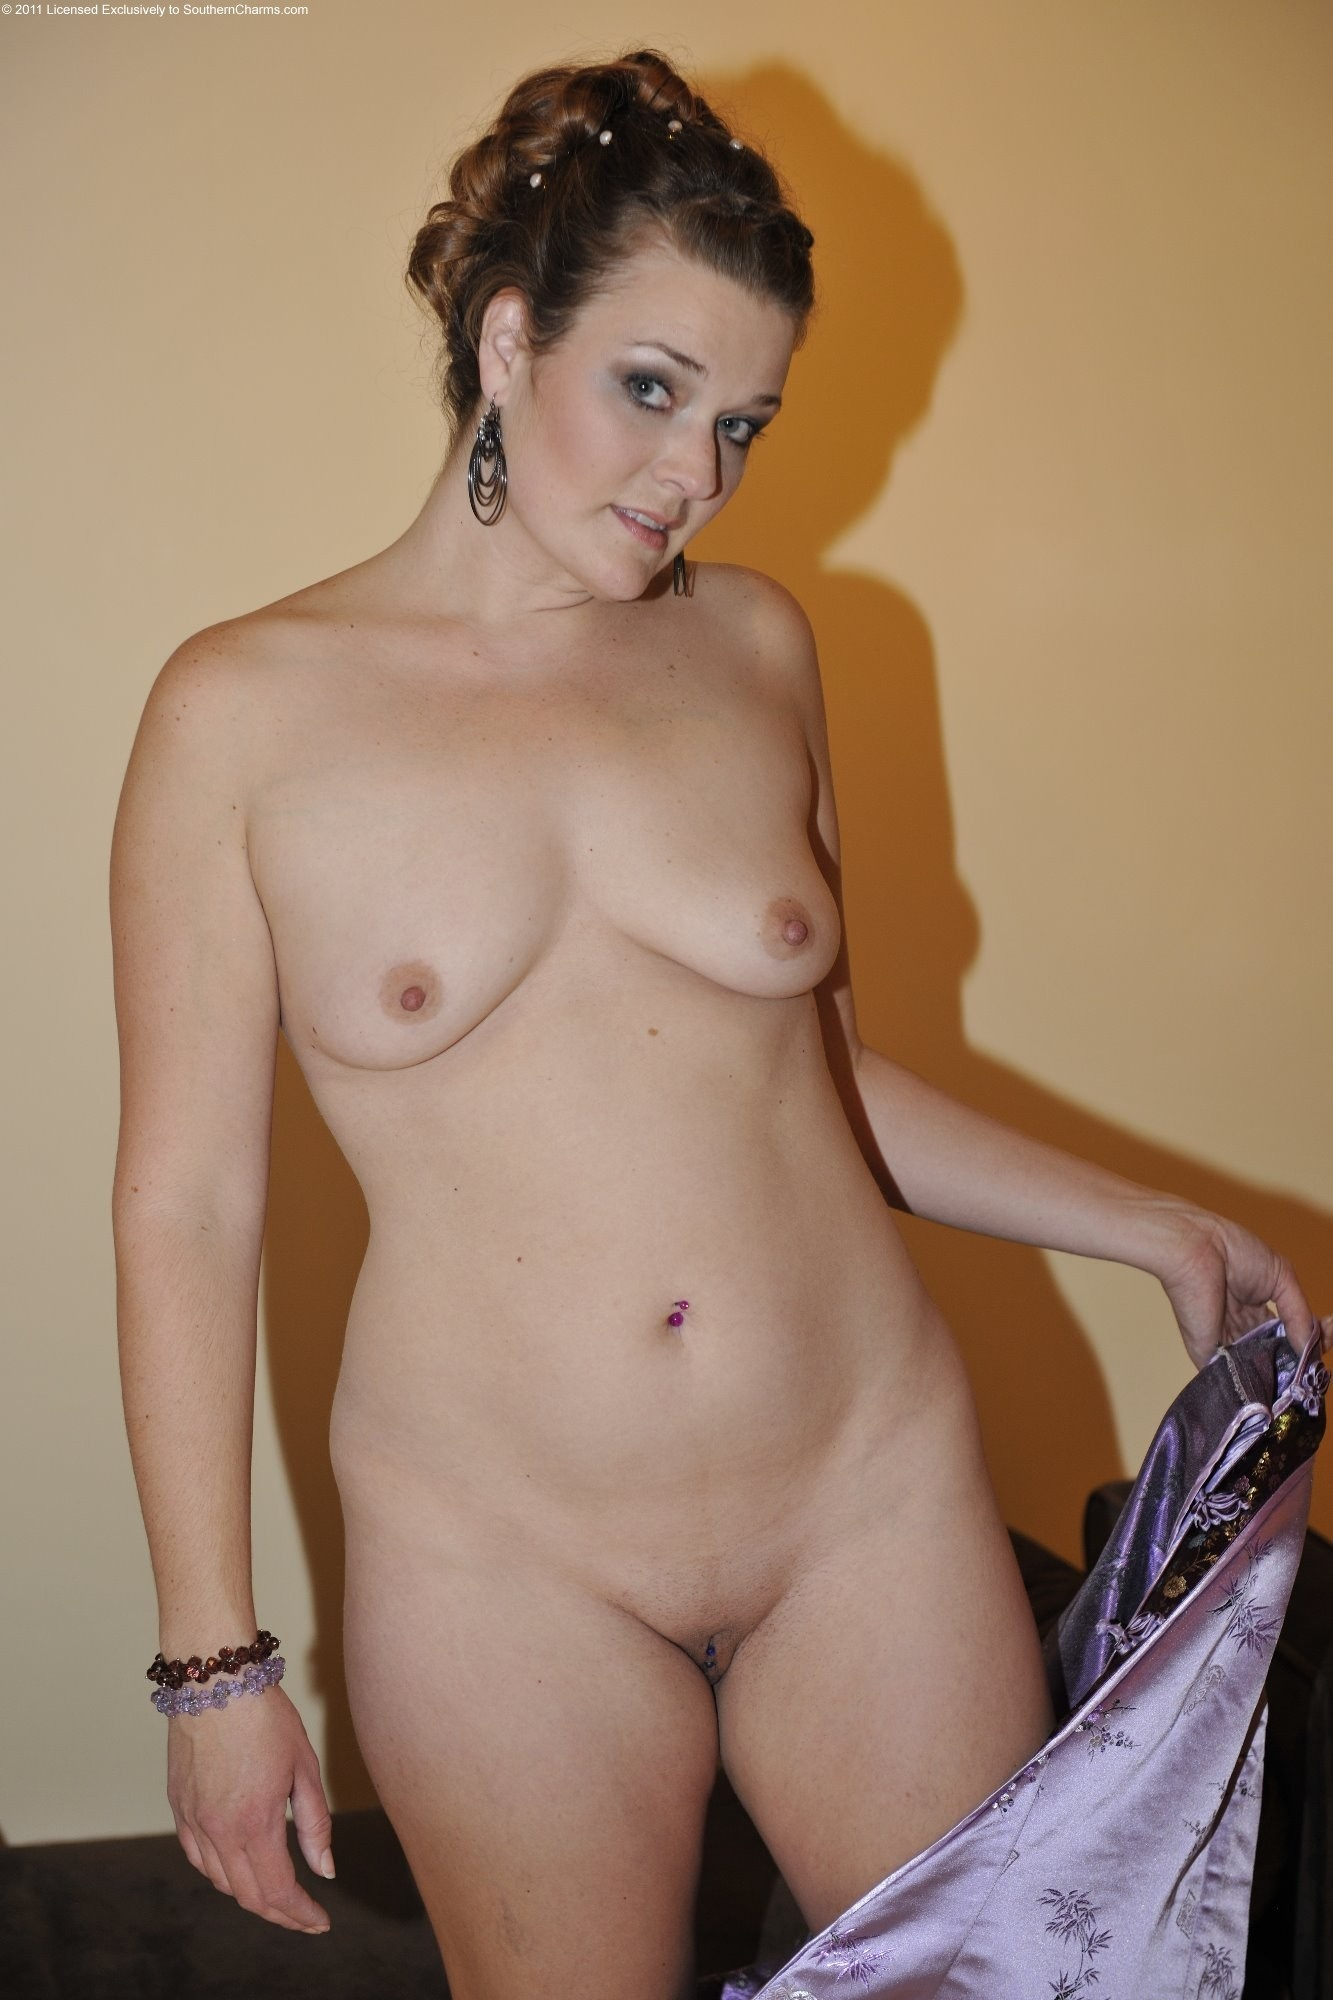 chat with fat girl for sex #mature #Milf #mom #mommy #olderwomen #amateur #wife #brunette #tinytits #flatchest #TinyTitties #nude #naked #frontal #saggytits #saggy